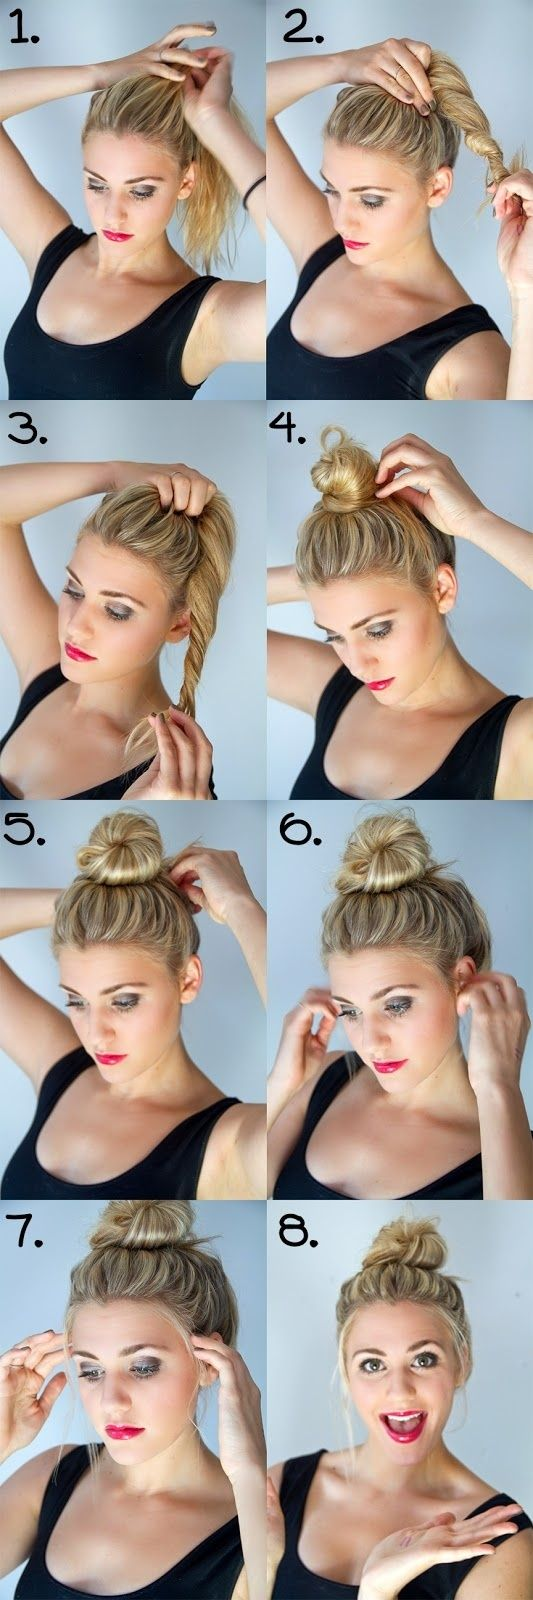 5 Gorgeous Beach Hairstyles To Rock This Summer